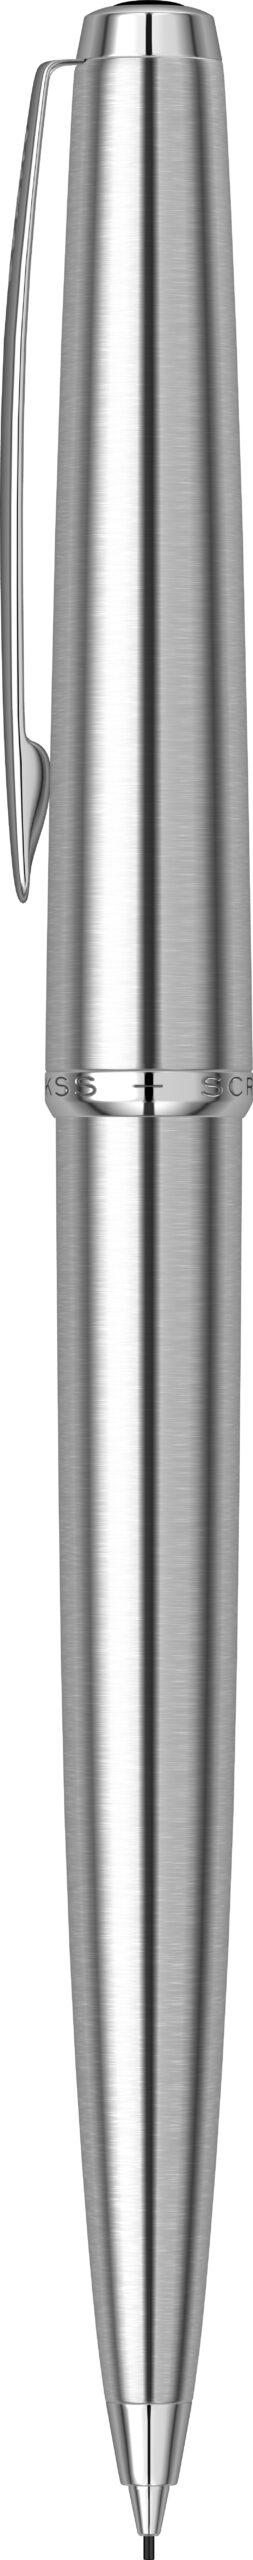 Stainless Steel CT Creion Mecanic 0.7 - Scrikss 5